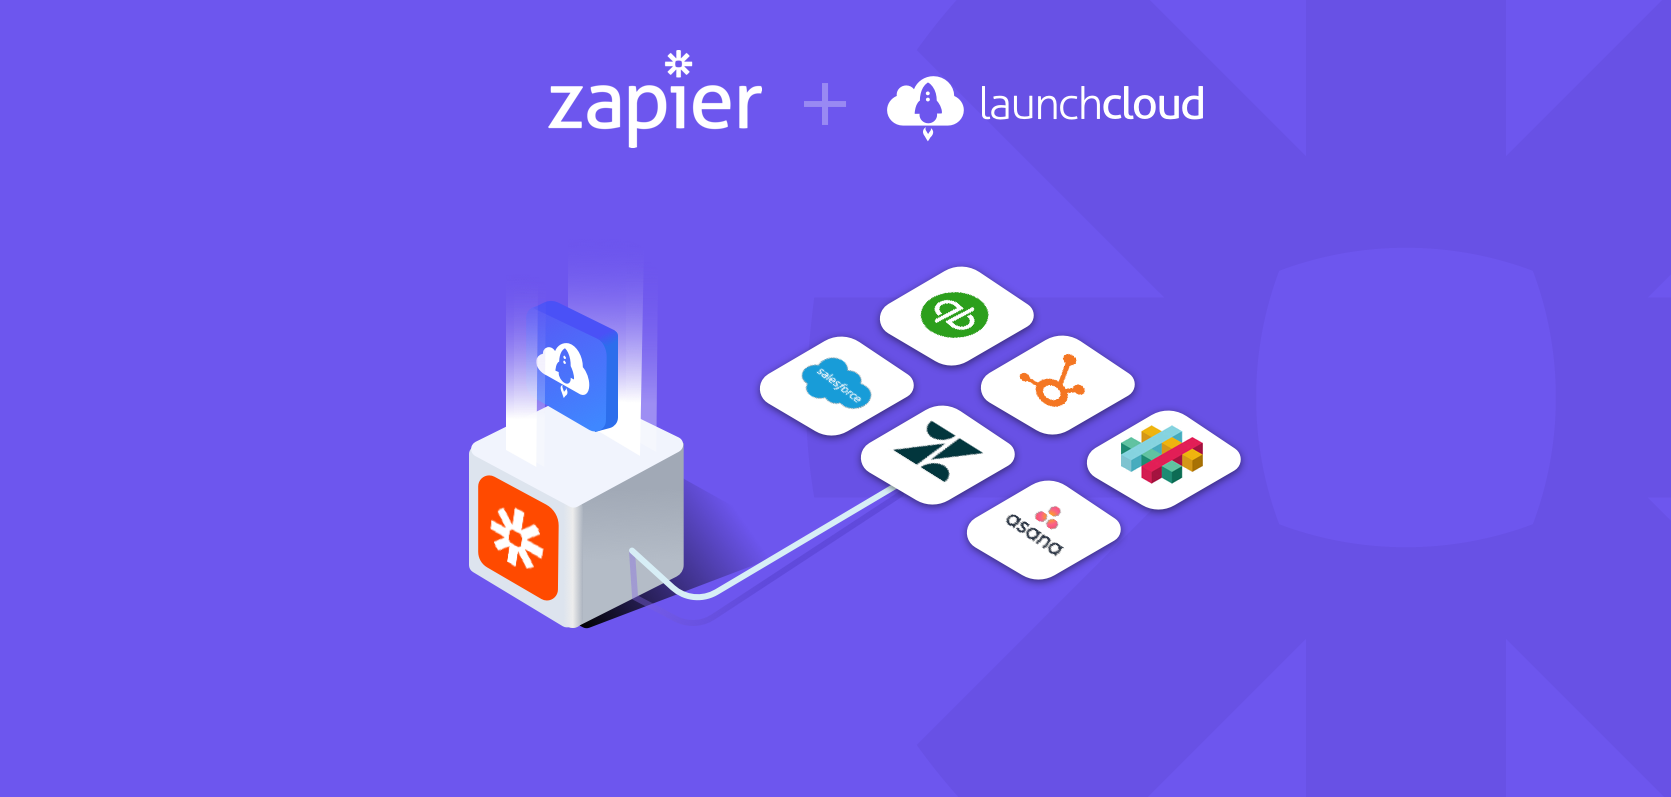 Zapier - Integrate With More